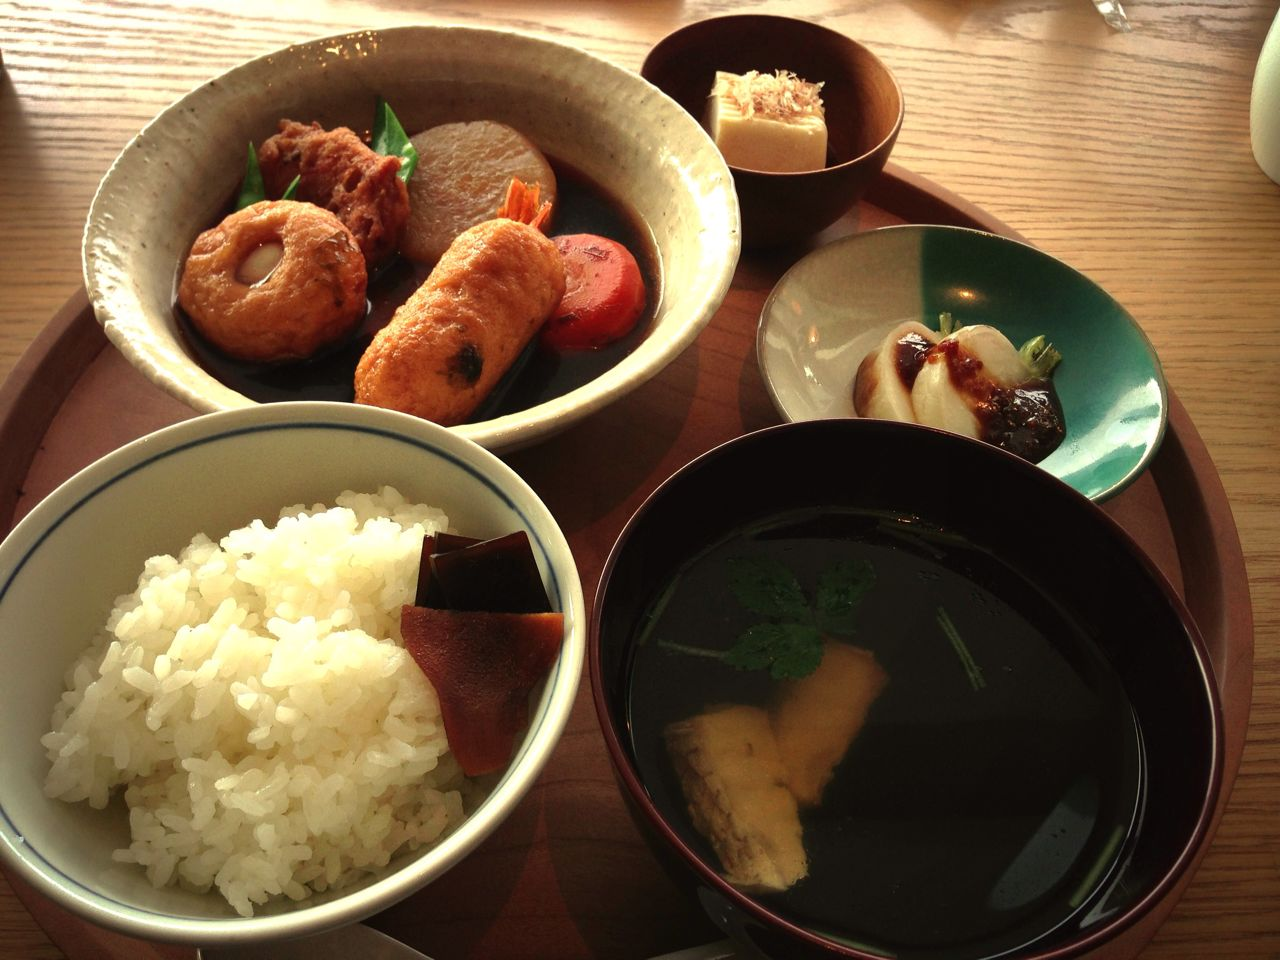 【Shibuya Hikarie】 Eat Tokyo set meal at the d47 dining room (with an additional night visit)